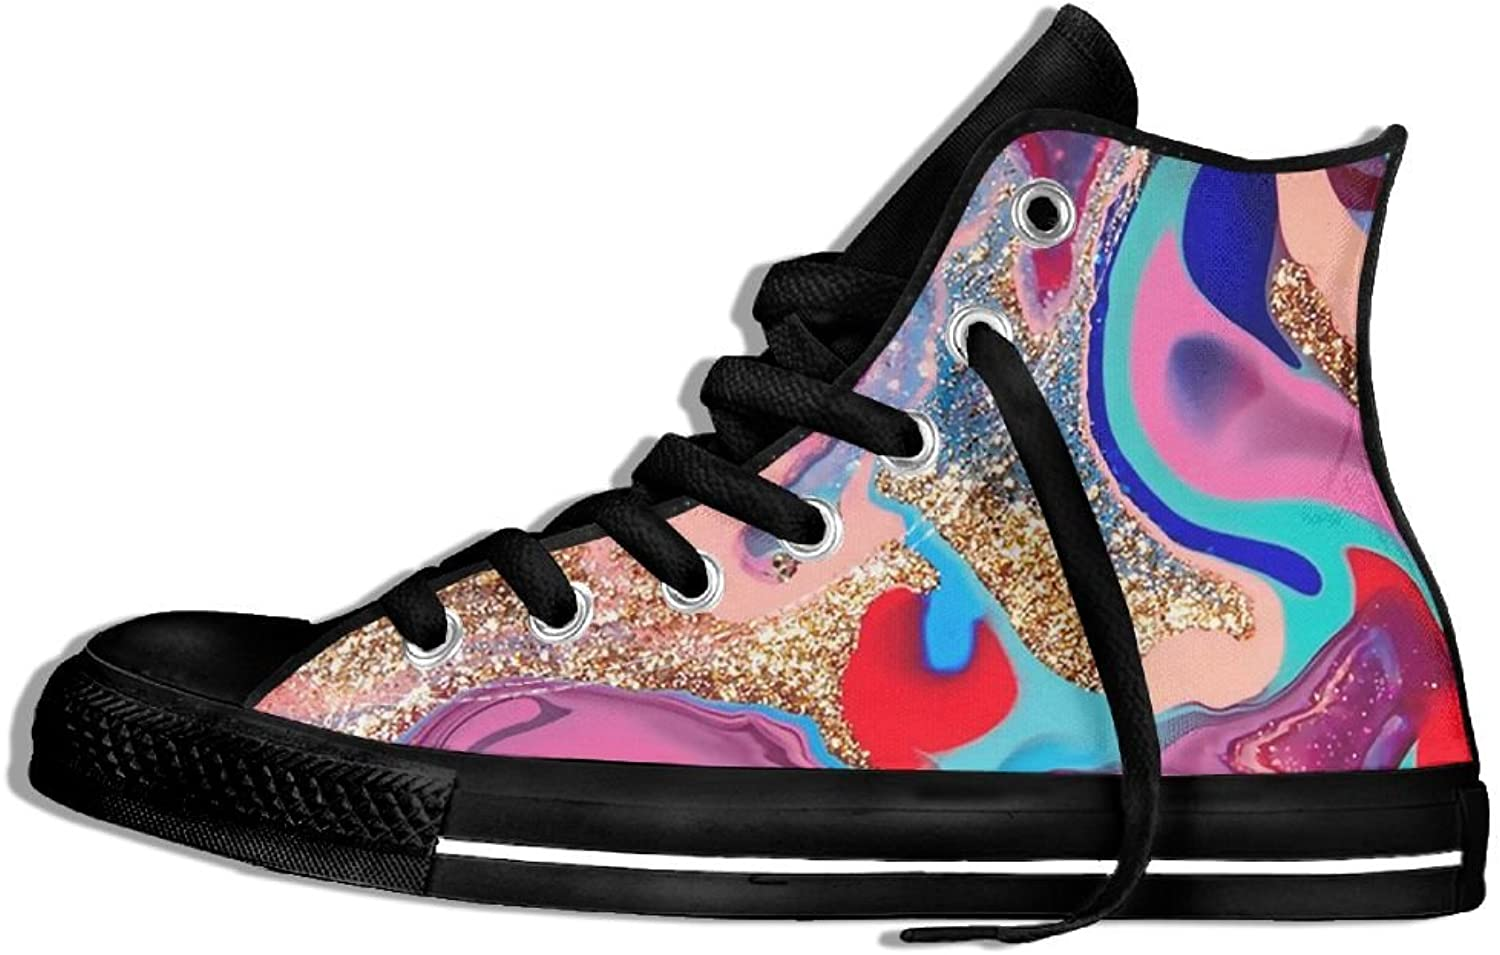 Unisex High Top Canvas Sneakers Shiny Abstract Painting Round Toe Anti-slip Running Trainers shoes